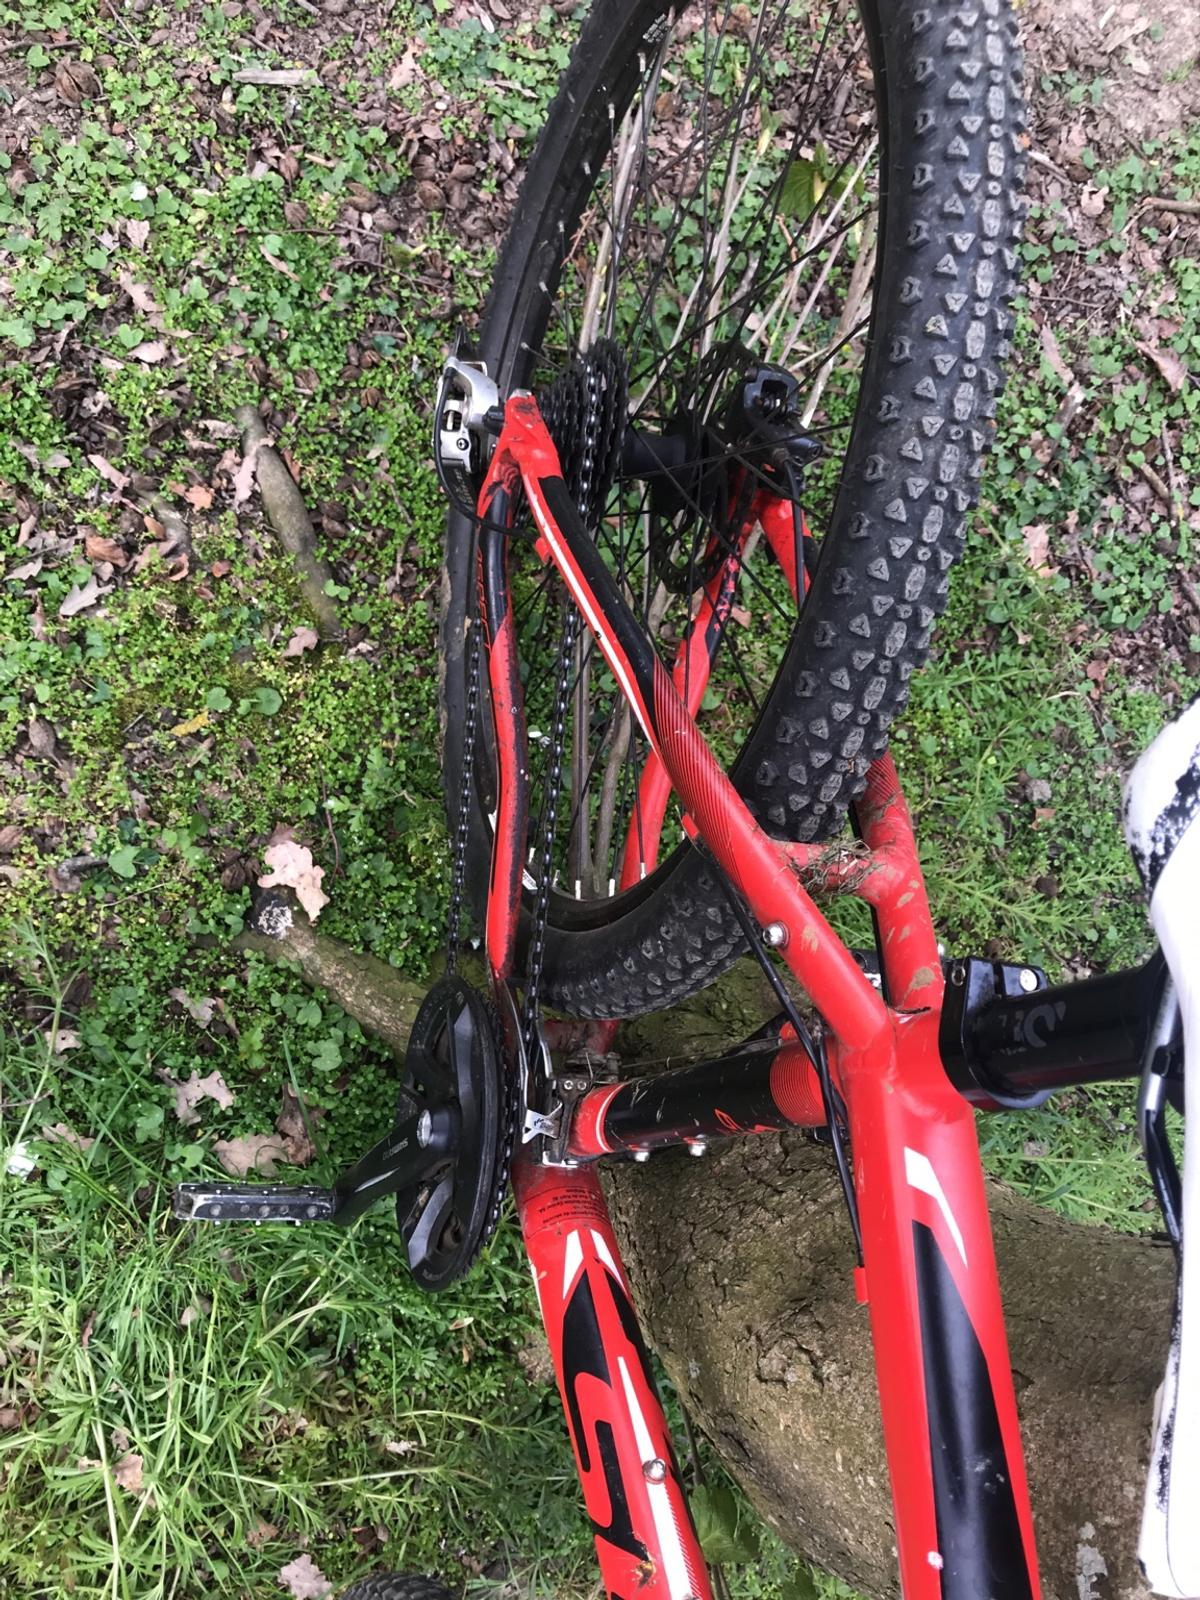 Scott mountain bike in Daventry for £150 00 for sale - Shpock